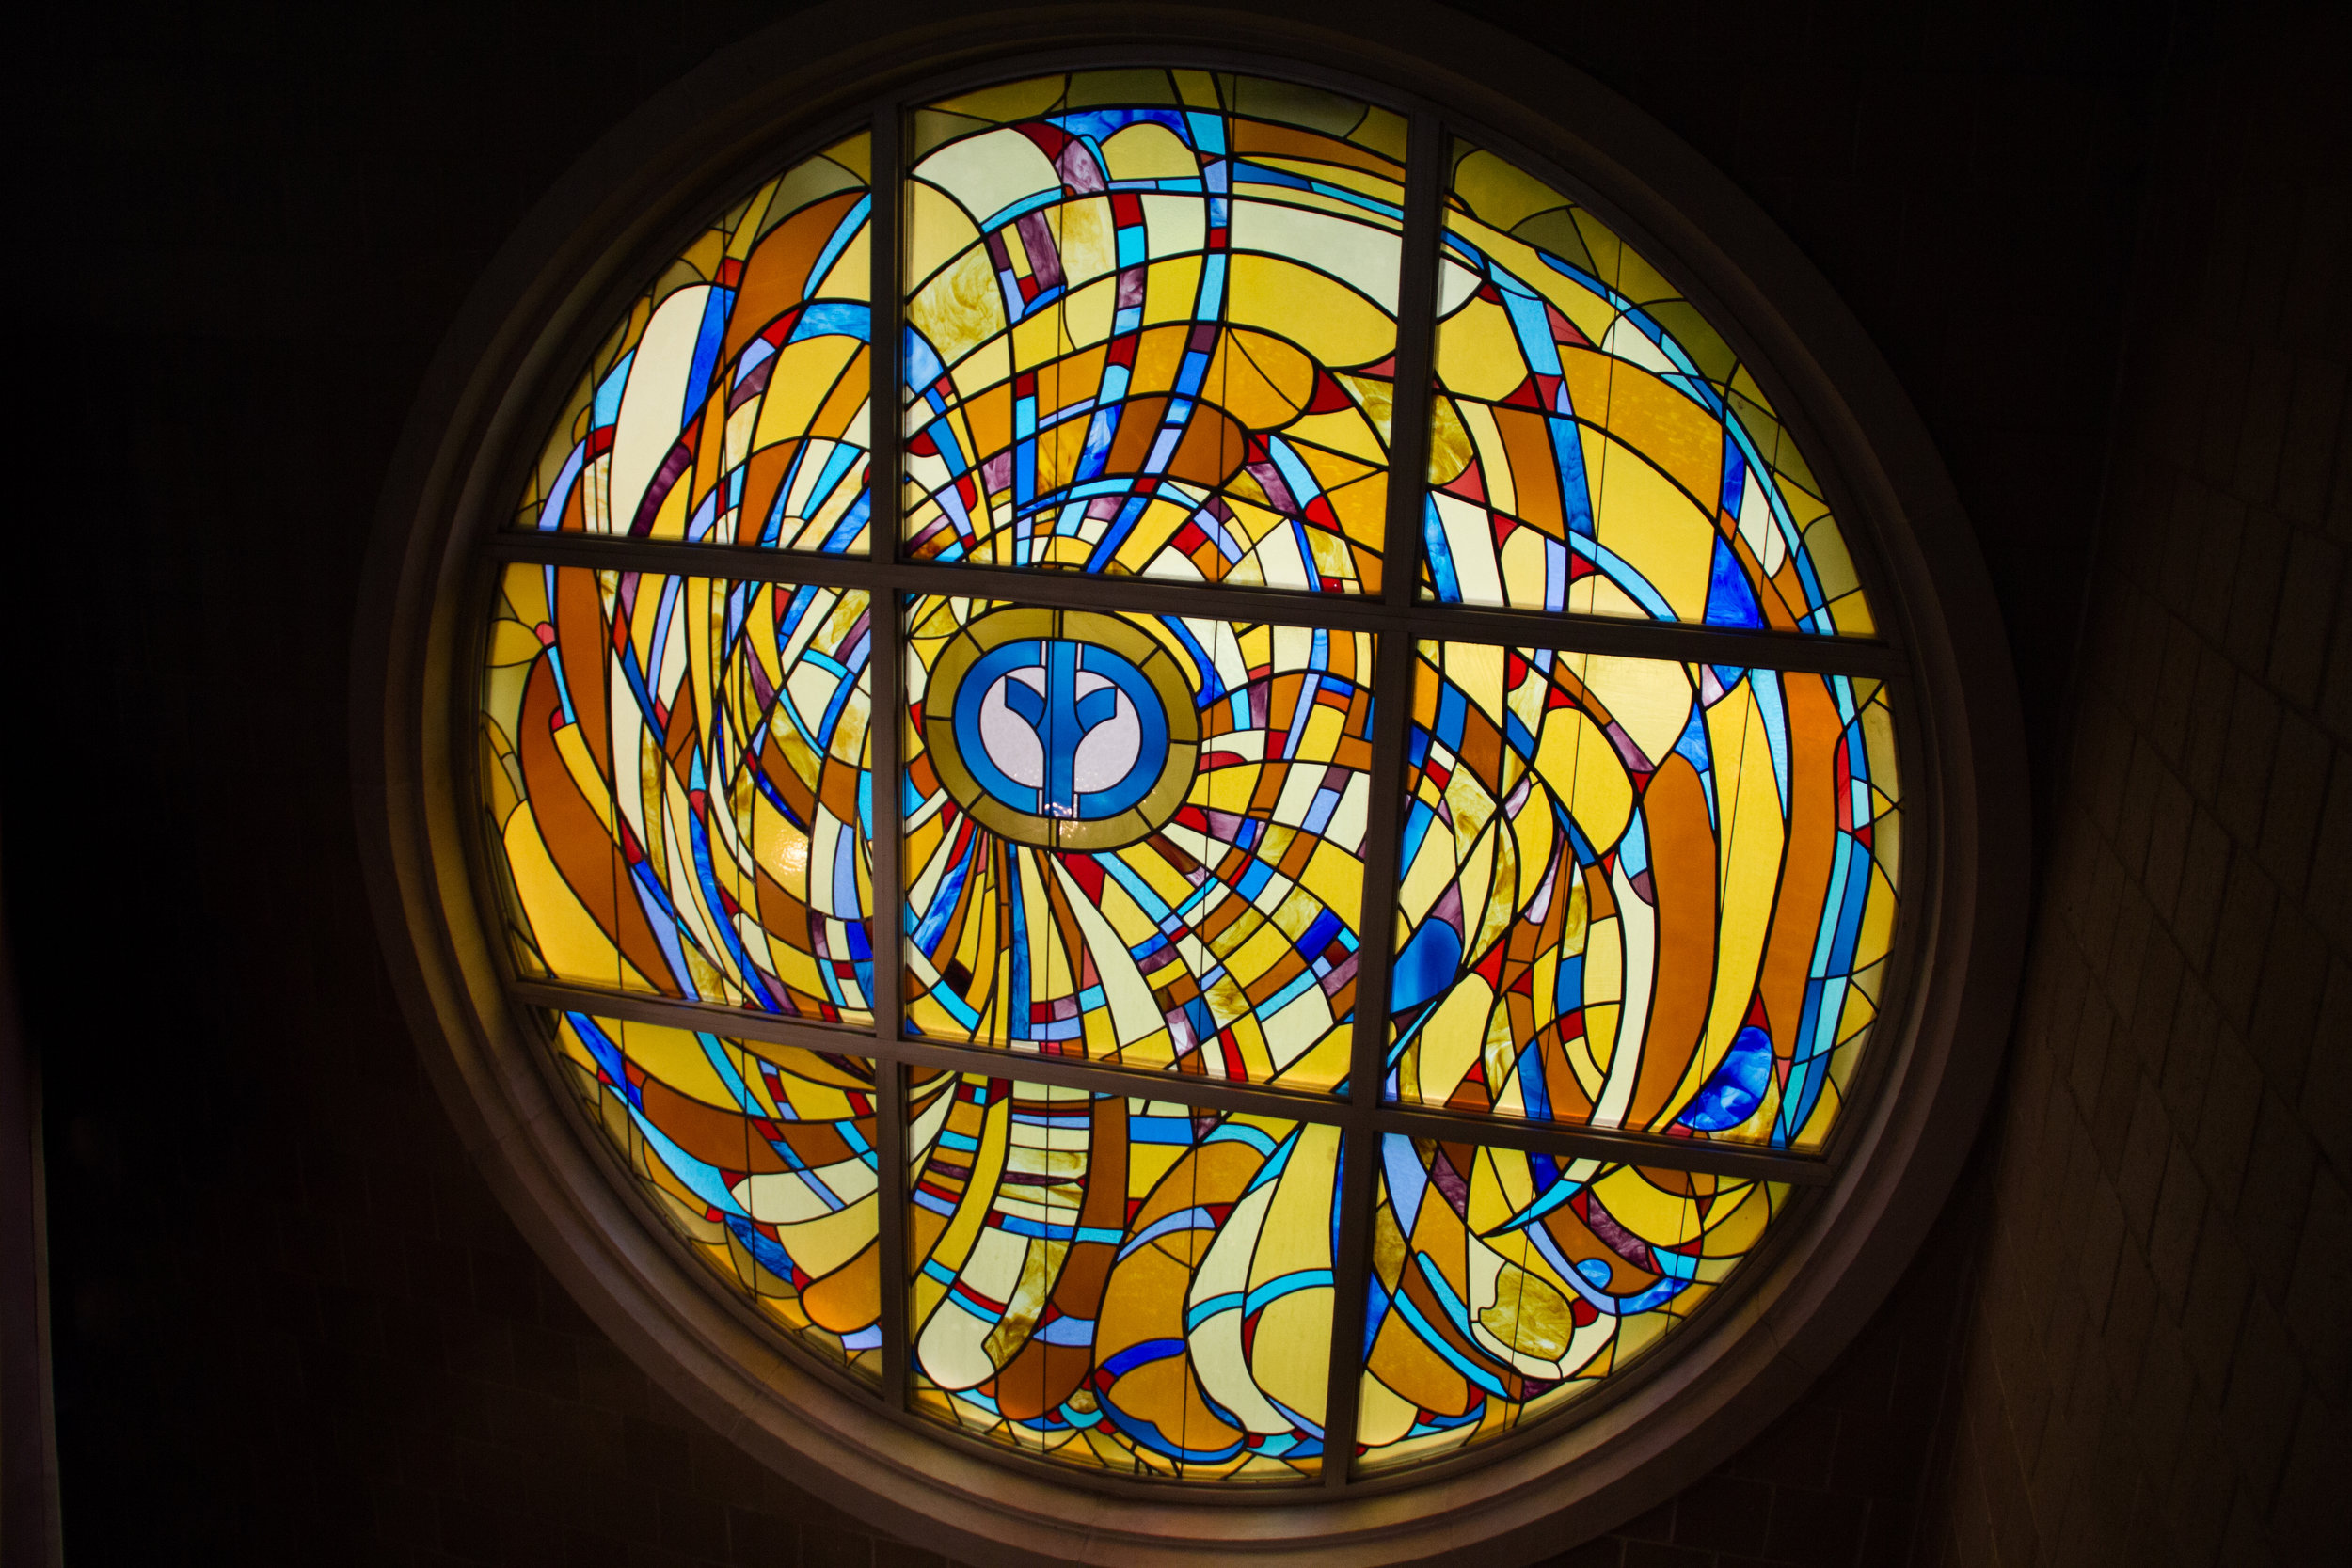 Stained glass window inside the Widener Center